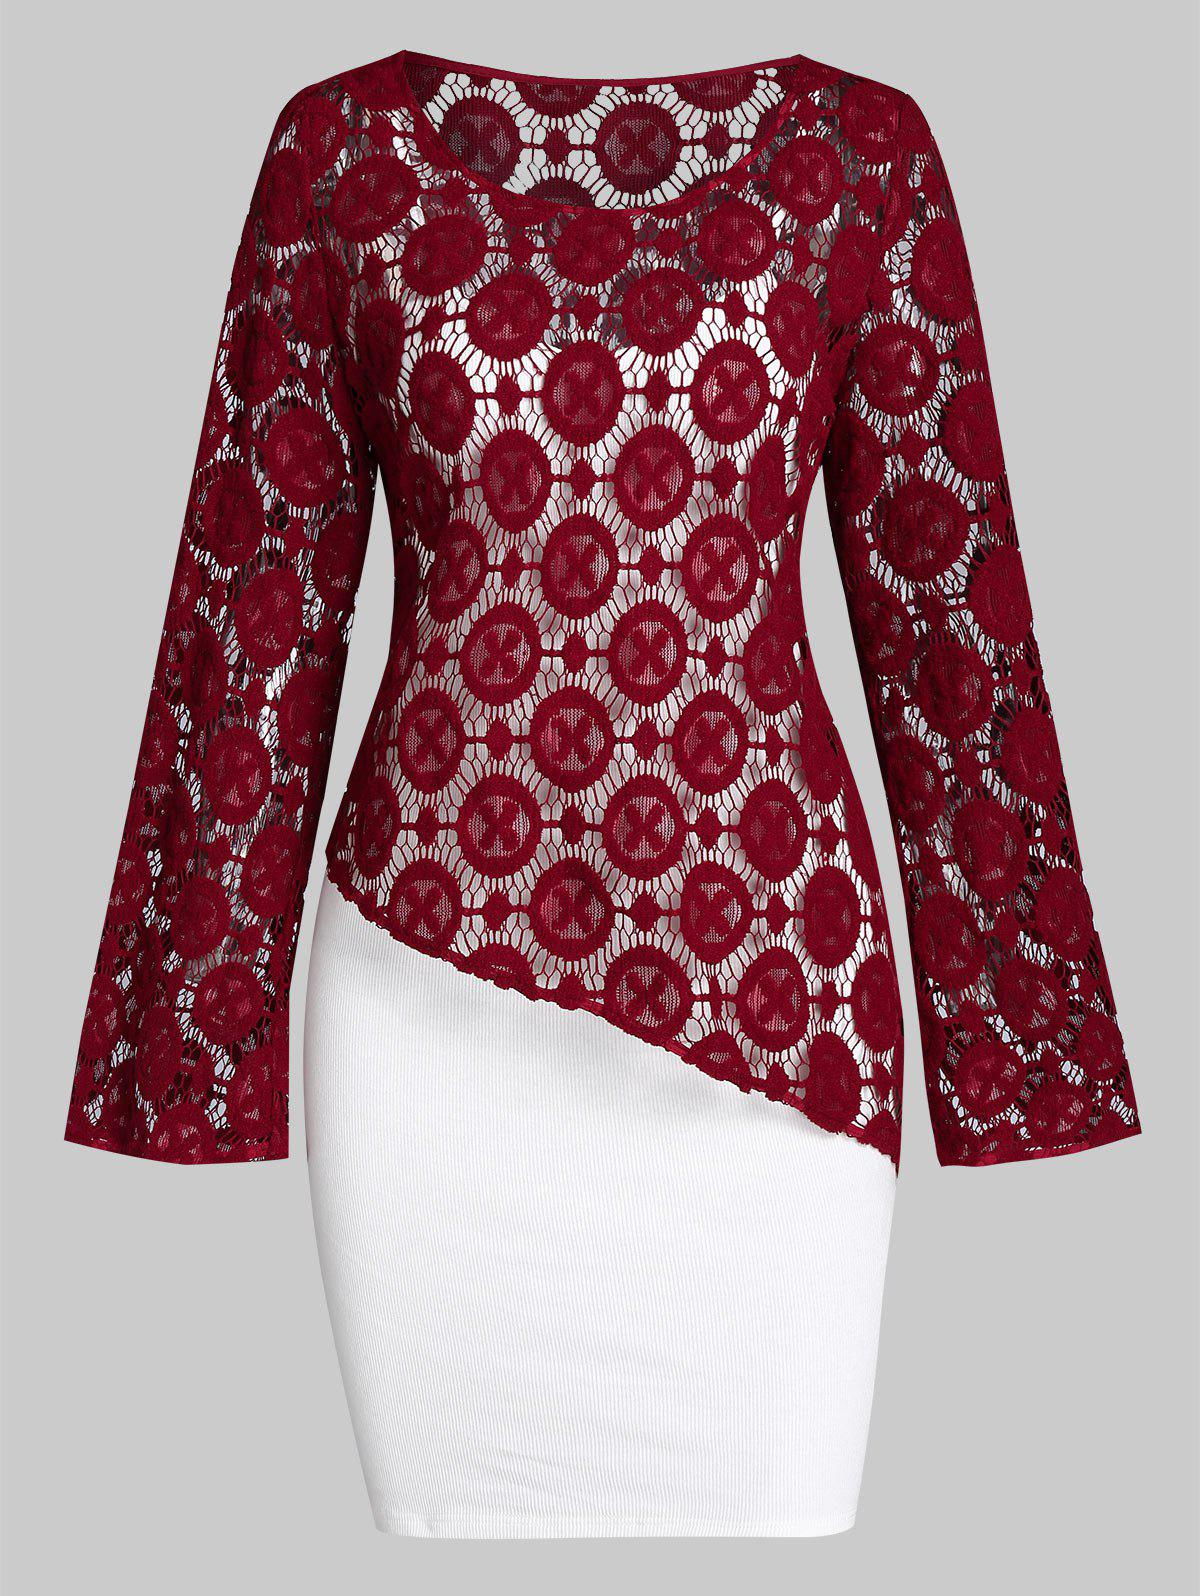 Cami Bodycon Dress with Asymmetrical Long Sleeve Top - RED WINE M